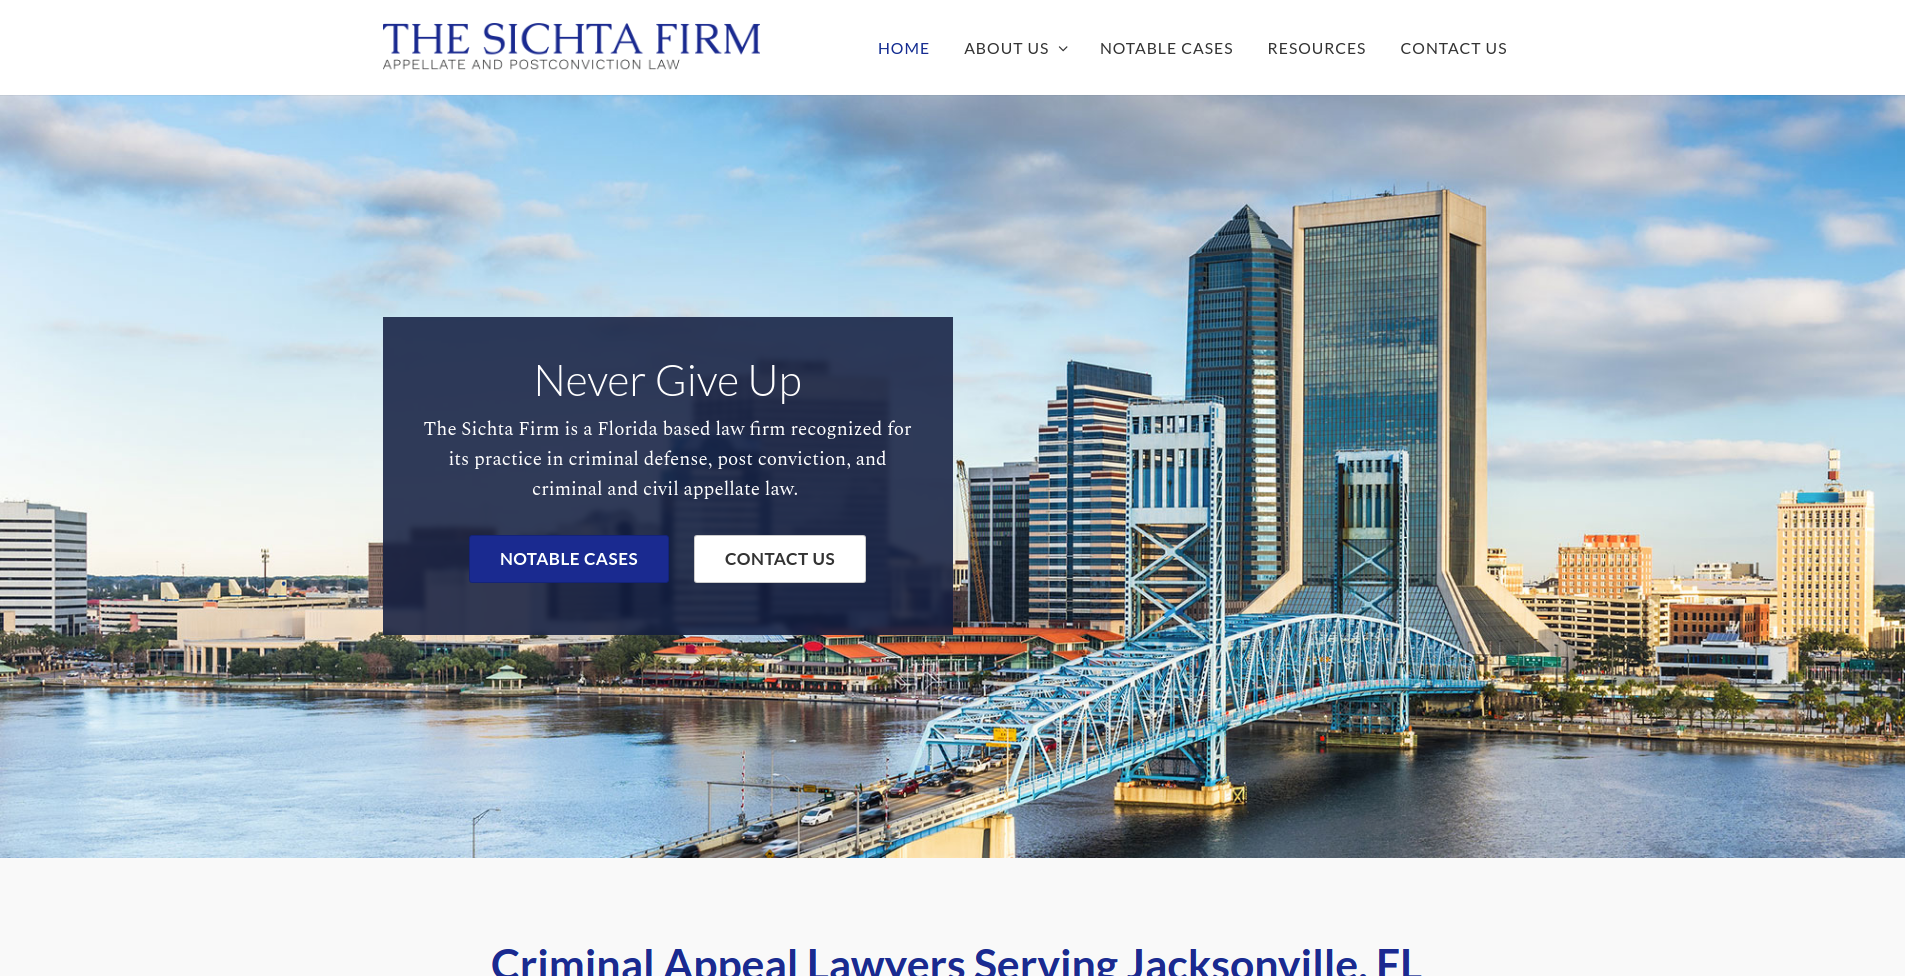 The Sichta Firm